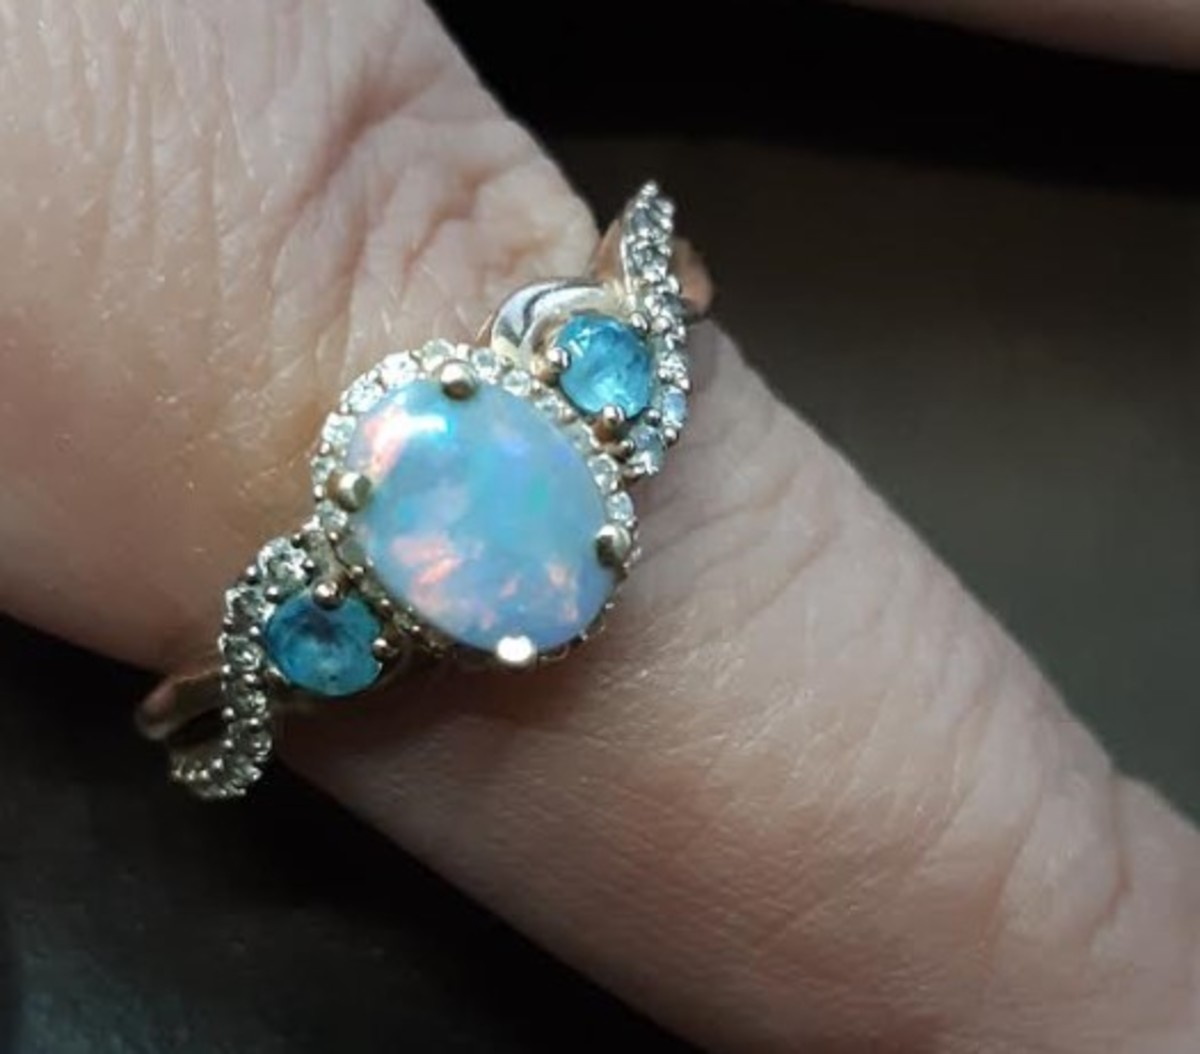 My own ring after removing the Neopolitan Opal and adding the Lightning Ridge Opal.